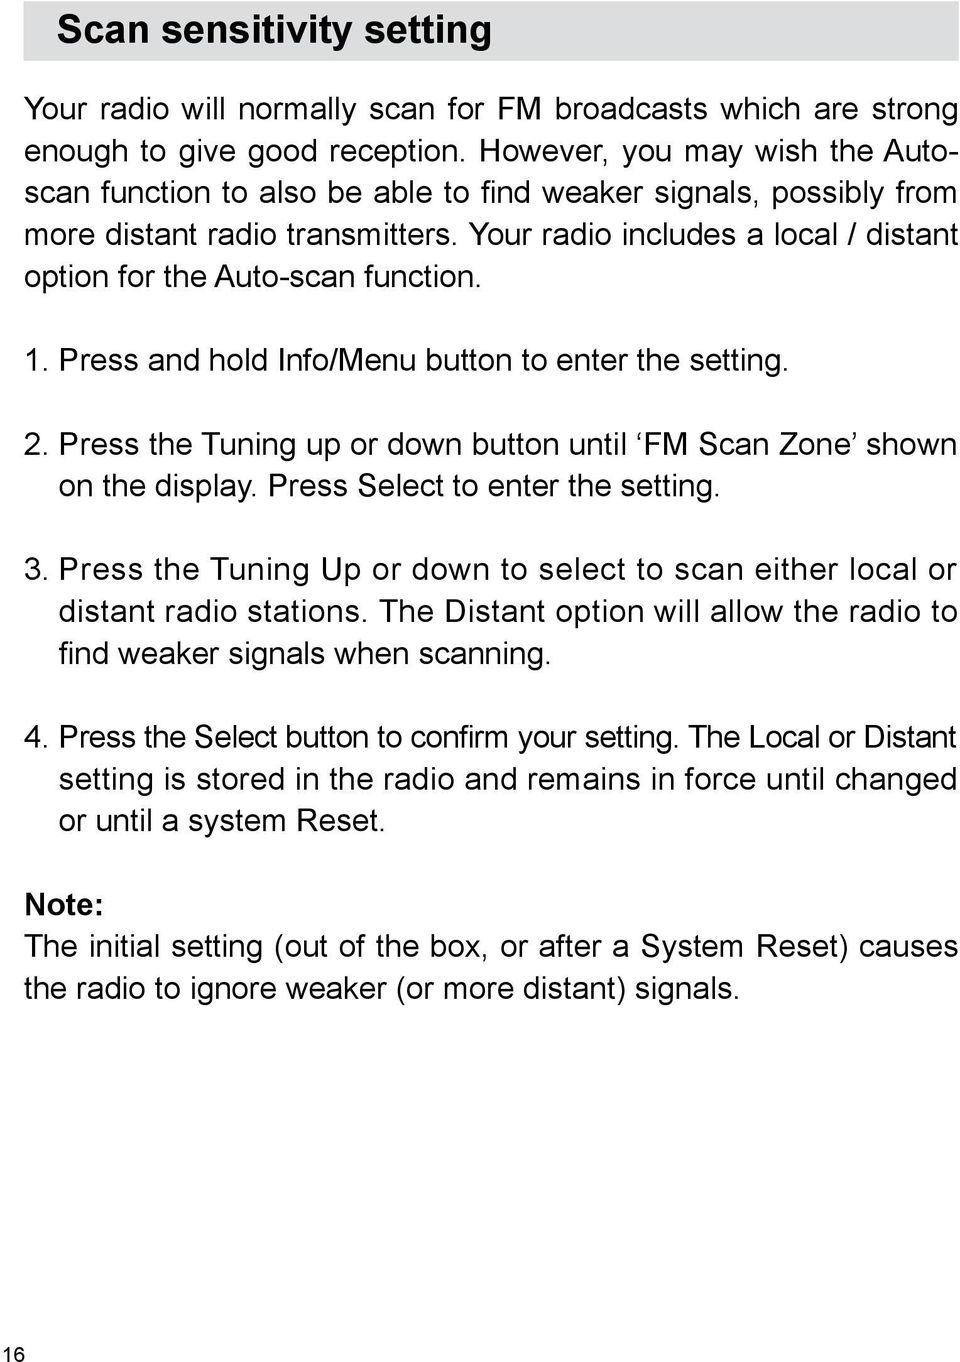 Your radio includes a local / distant option for the Auto-scan function. 1. Press and hold Info/Menu button to enter the setting. 2.